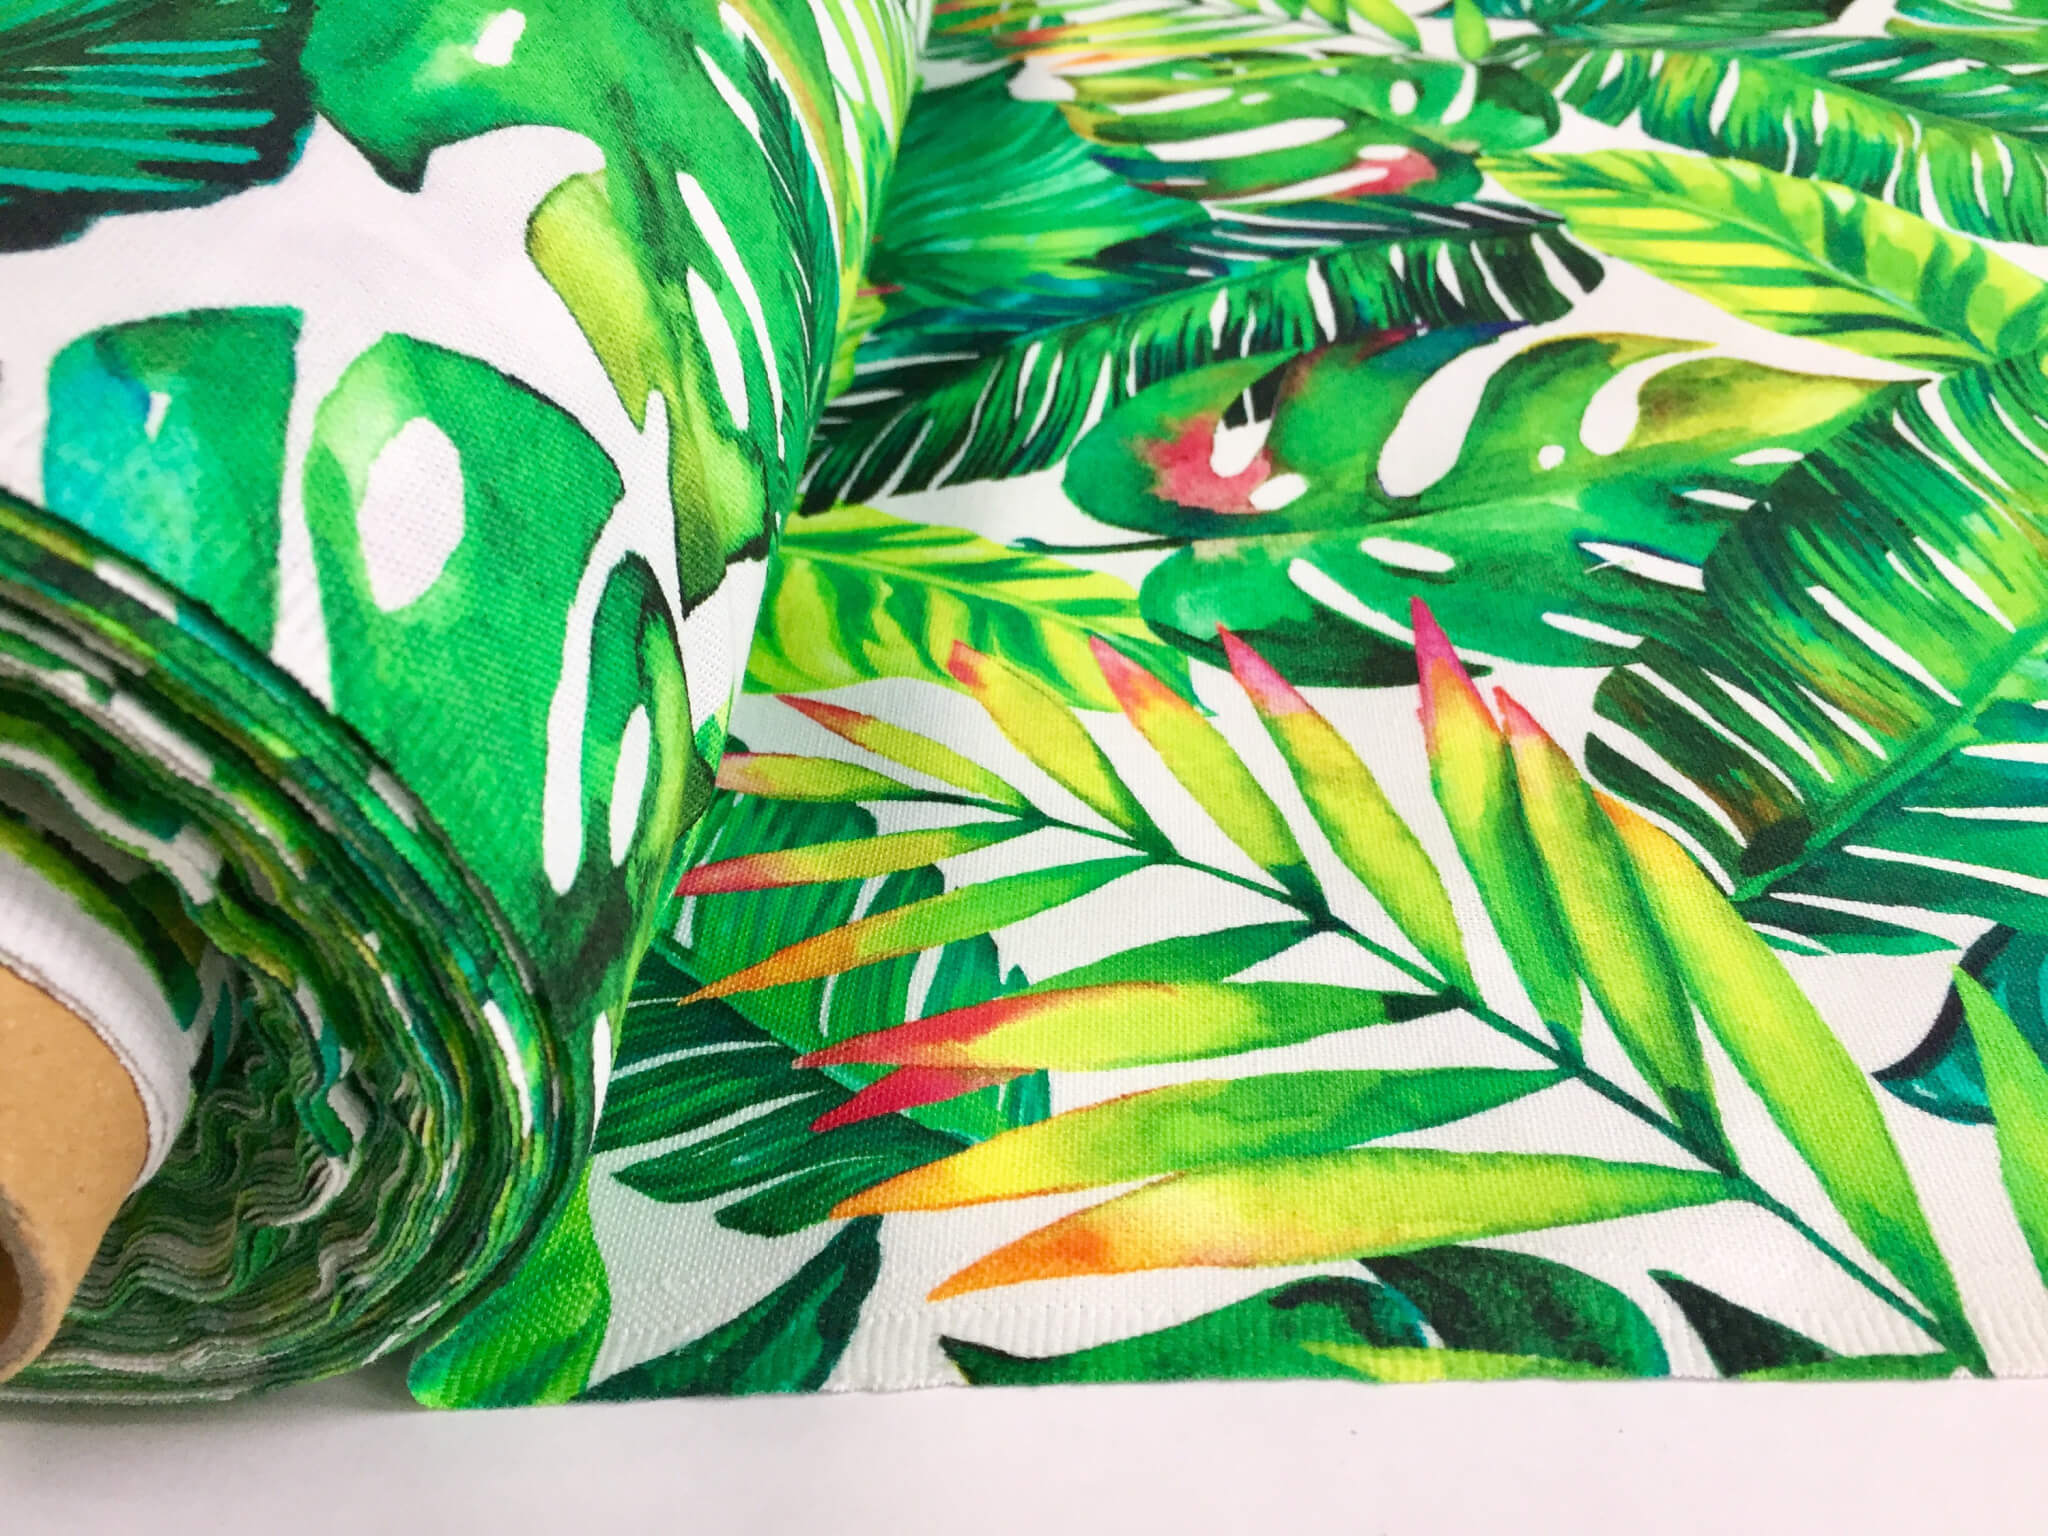 palm-leaves-3-tropical-leaf-fabric-for-curtains-upholstery-green-cotton-material-digital-print-fabric-280cm-extra-wide-5a4193ab1.jpg